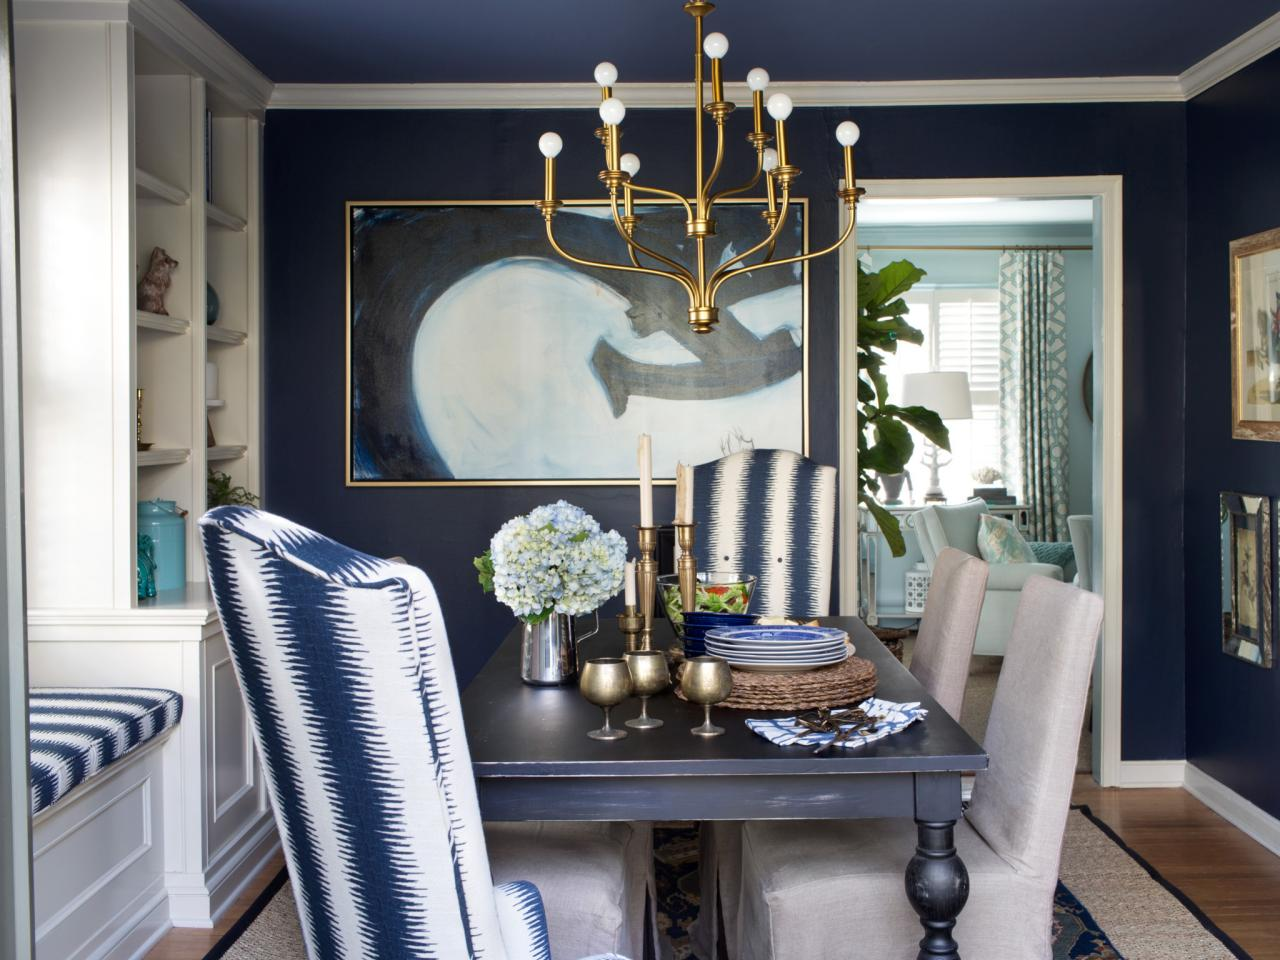 hgtv 39 s favorite trends to try in 2015 interior design styles and